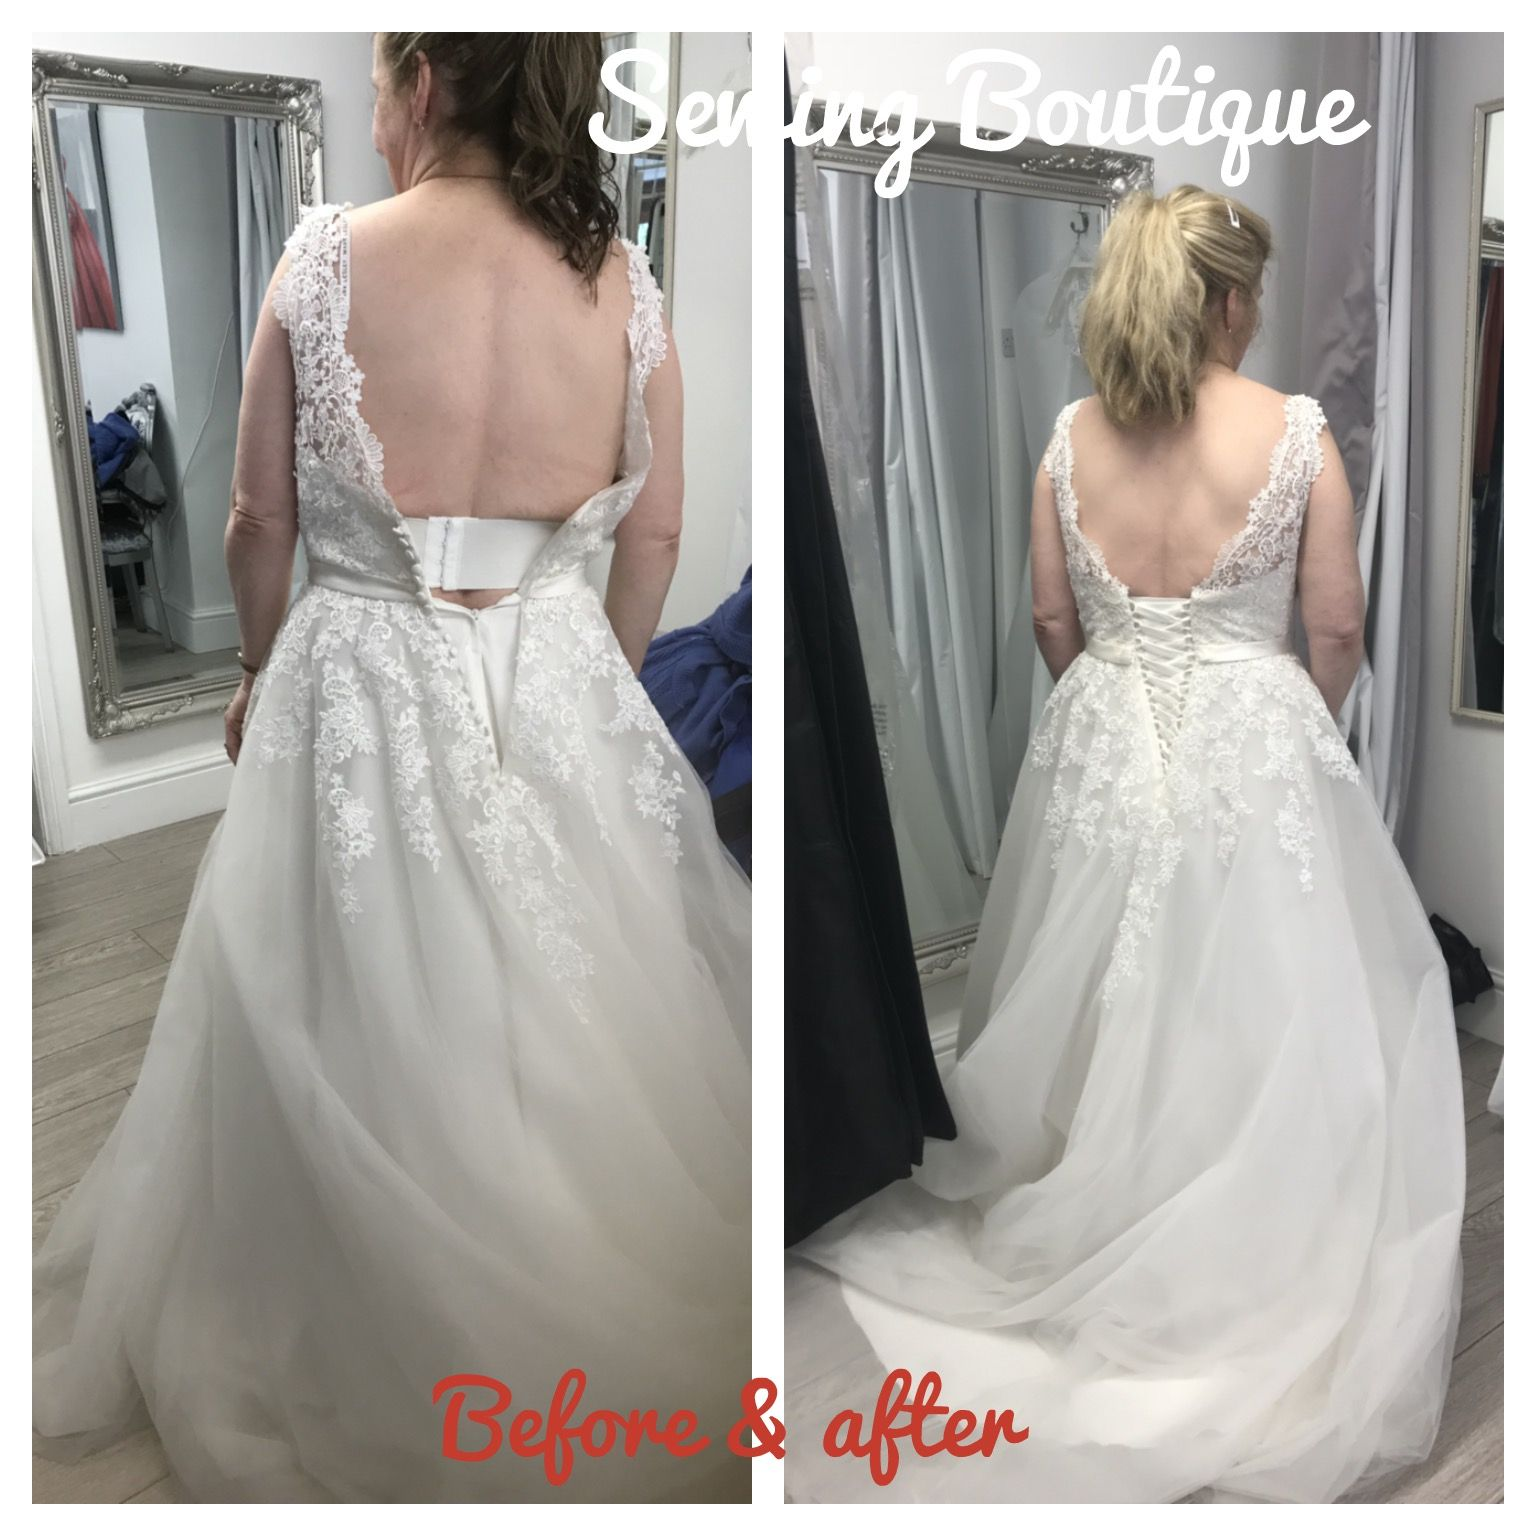 Wedding Gown Alterations In 2020 Wedding Gown Alterations